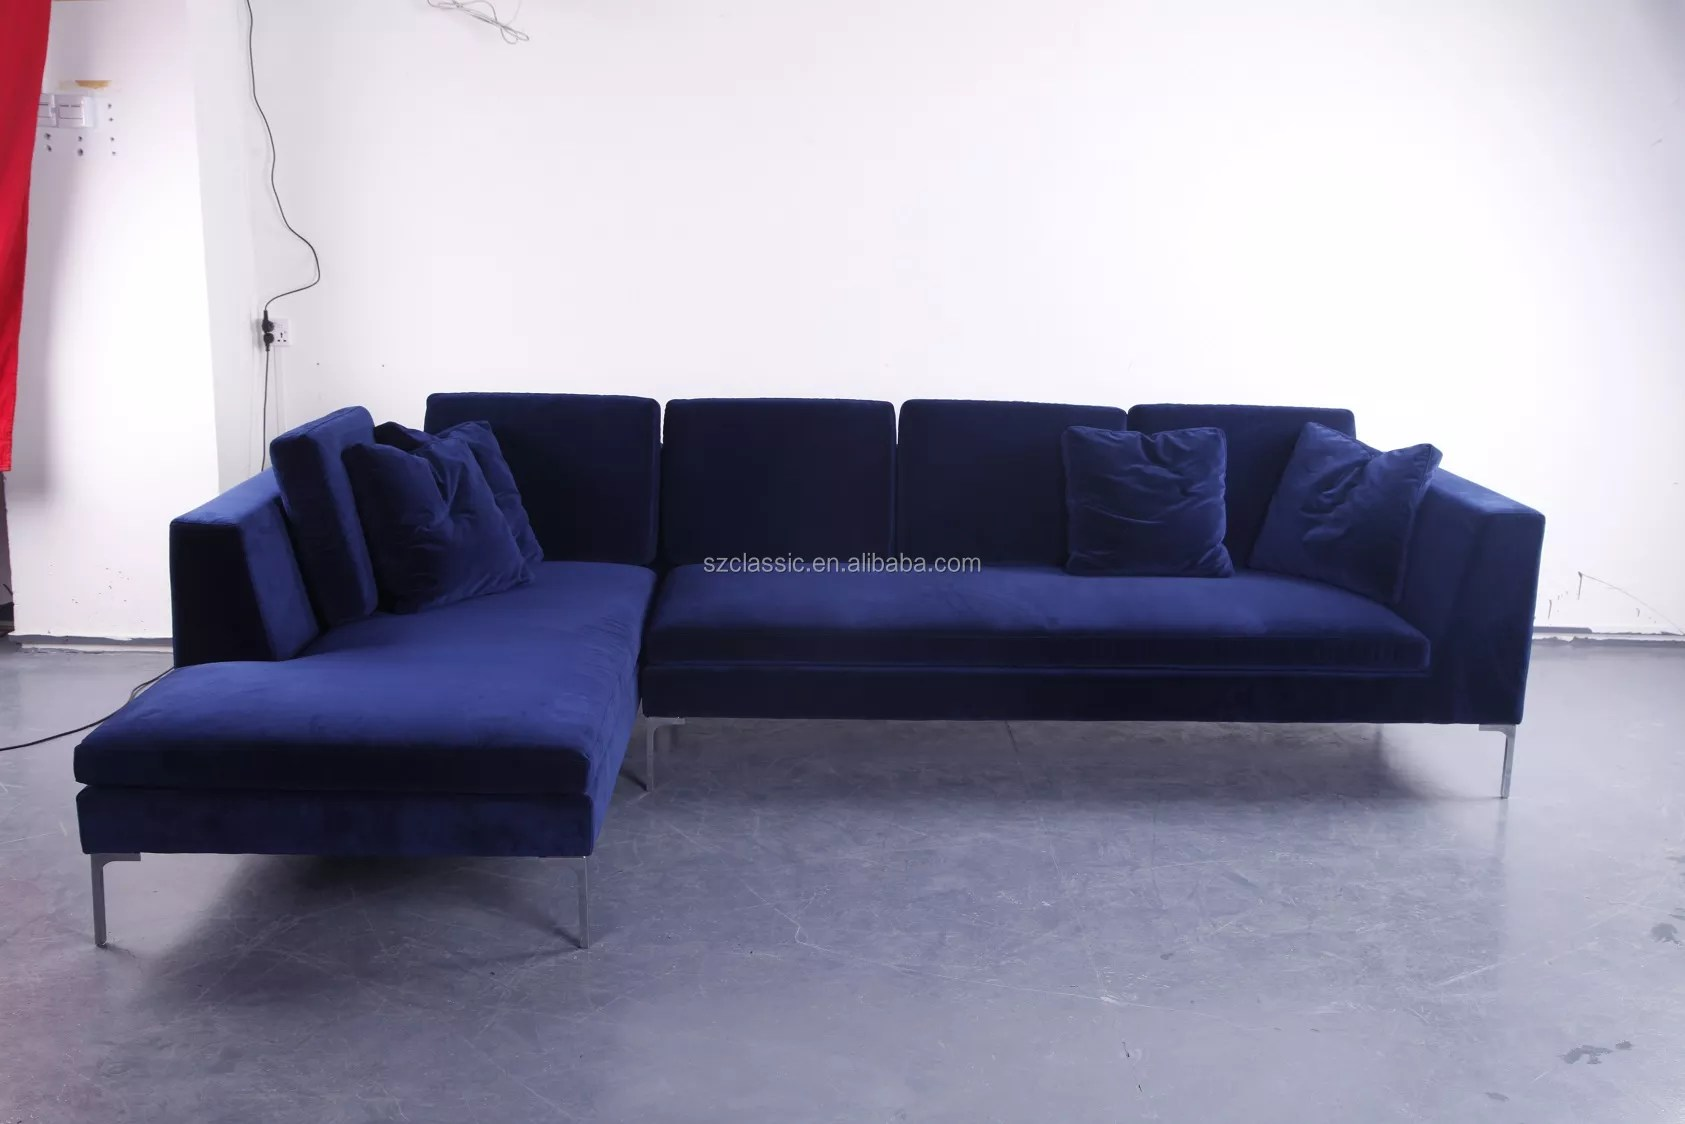 Antonio Citterio City Sofa Antonio Citterio Design Modern Sectional Navy Blue Velvet B B Italia Sofa Charles Reproduction Buy B B Italia Sofa B B Italia Sofa Charles B B